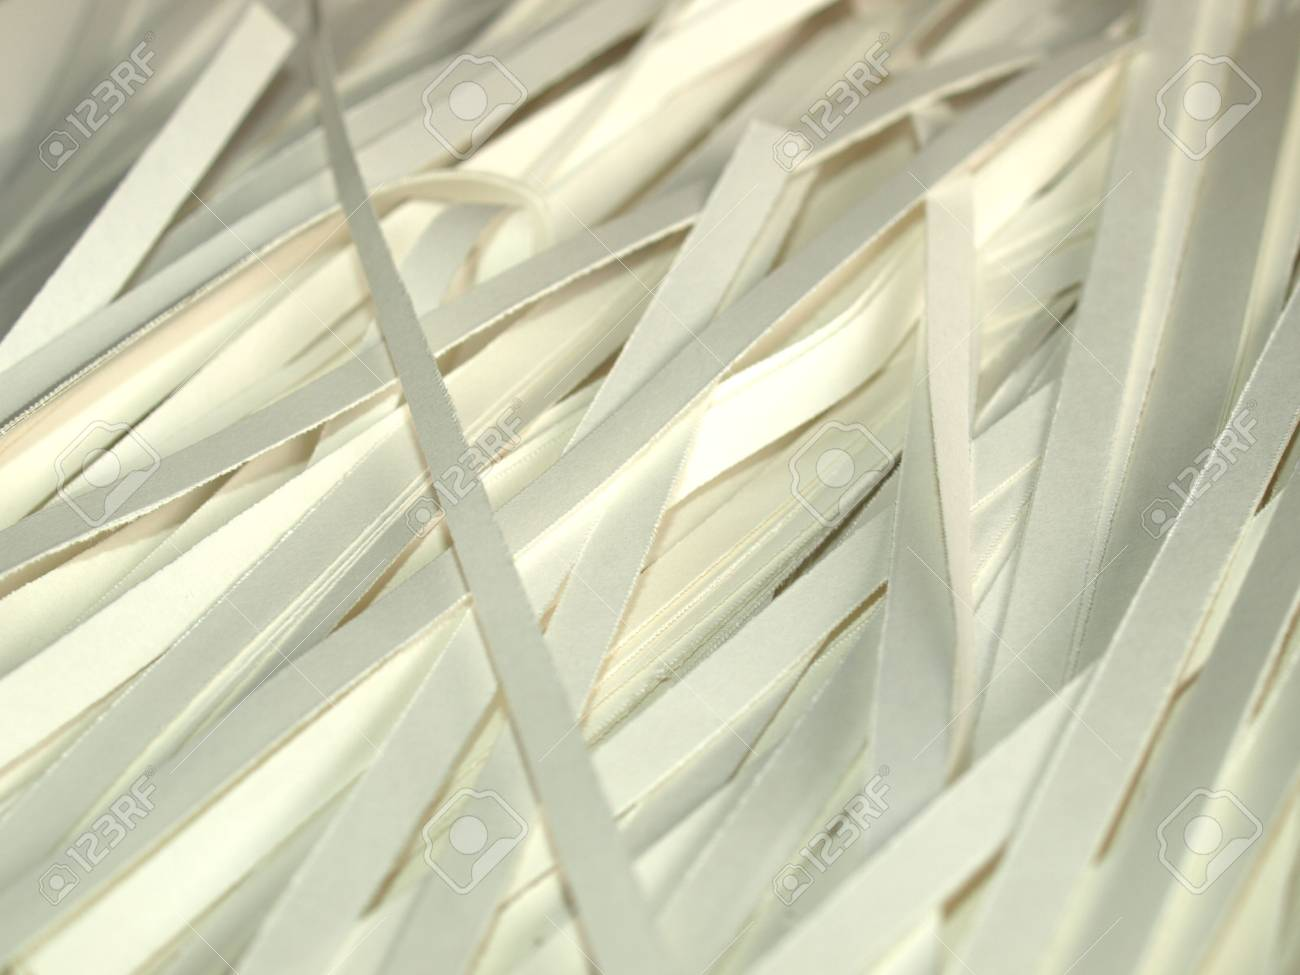 Paper documents cut into strips with a paper shredder Stock Photo - 6577628